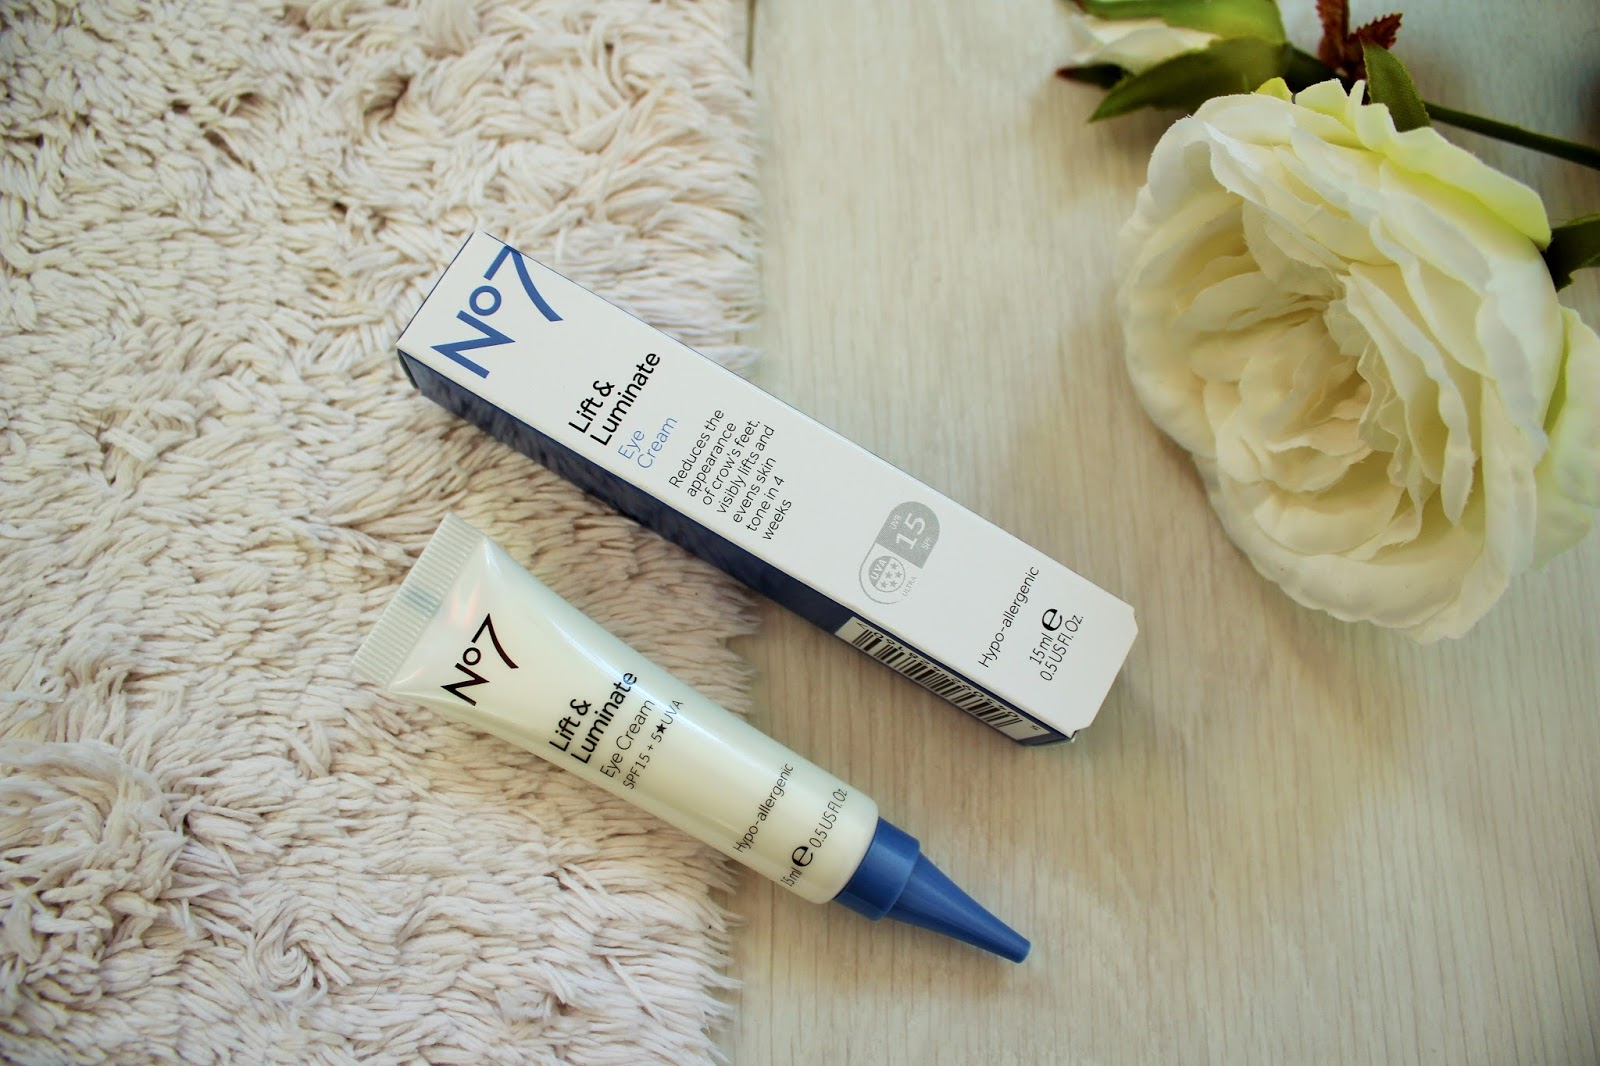 No7 Lift & Luminate Triple Action Range - First Impressions and Giveaway 6